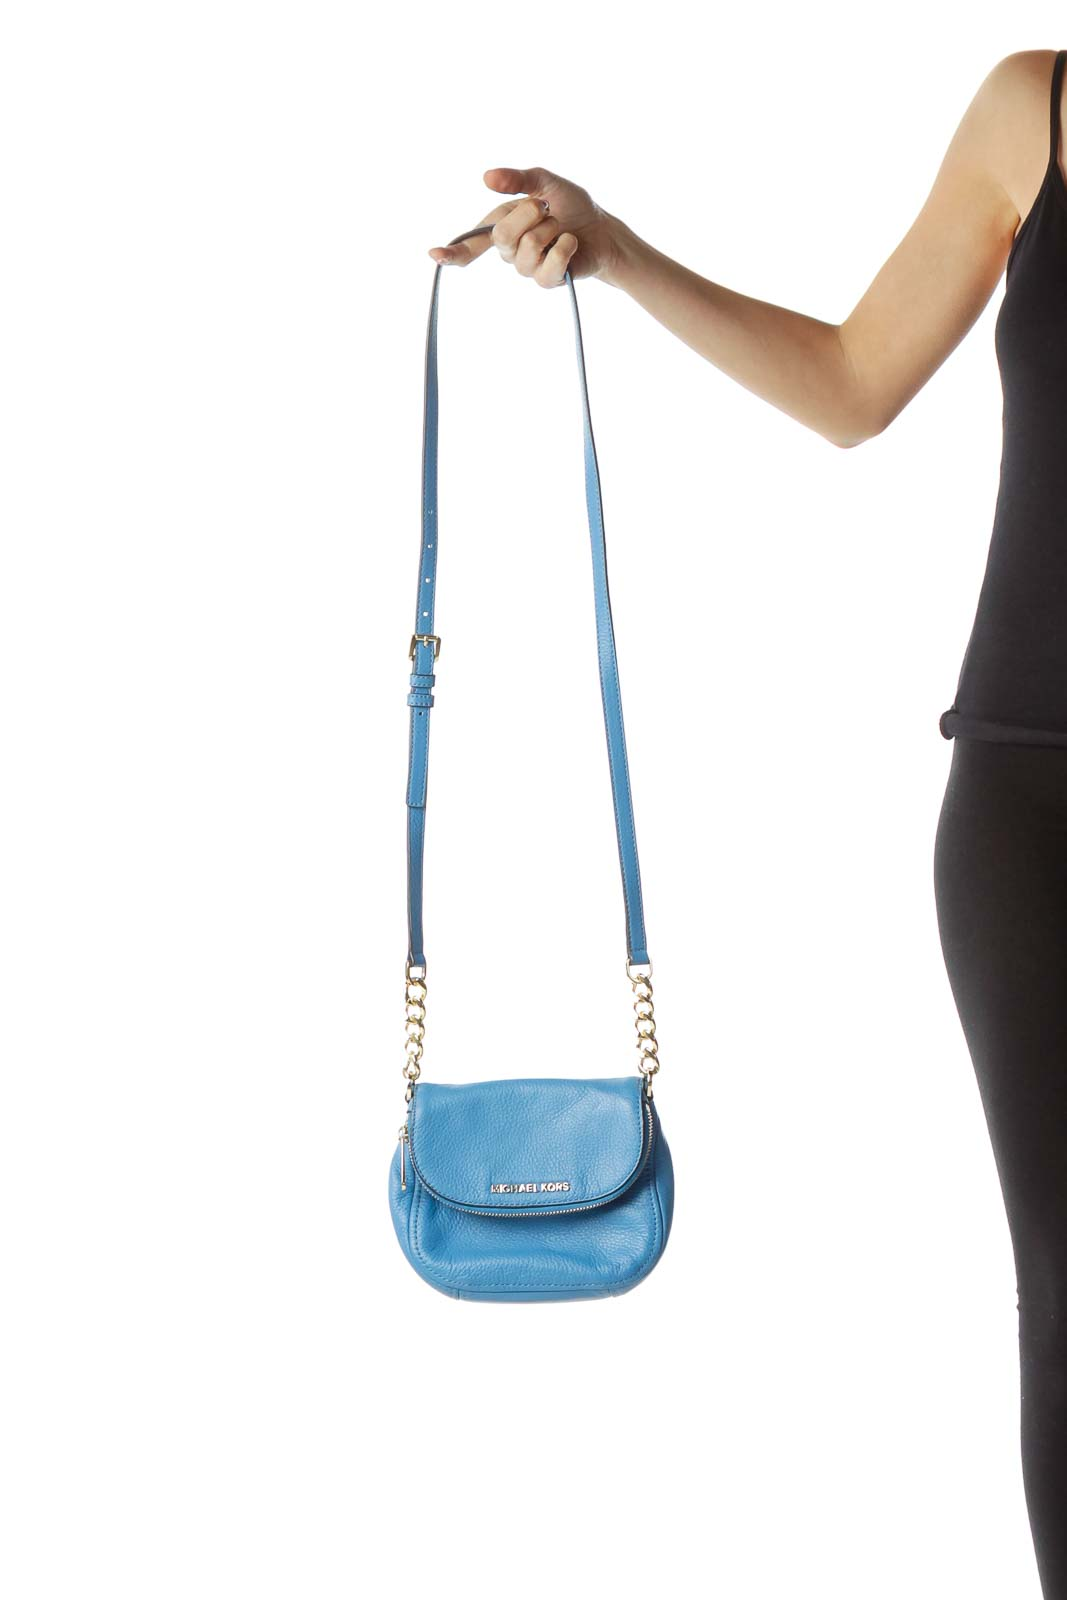 Blue Leather Gold Chain Crossbody Bag